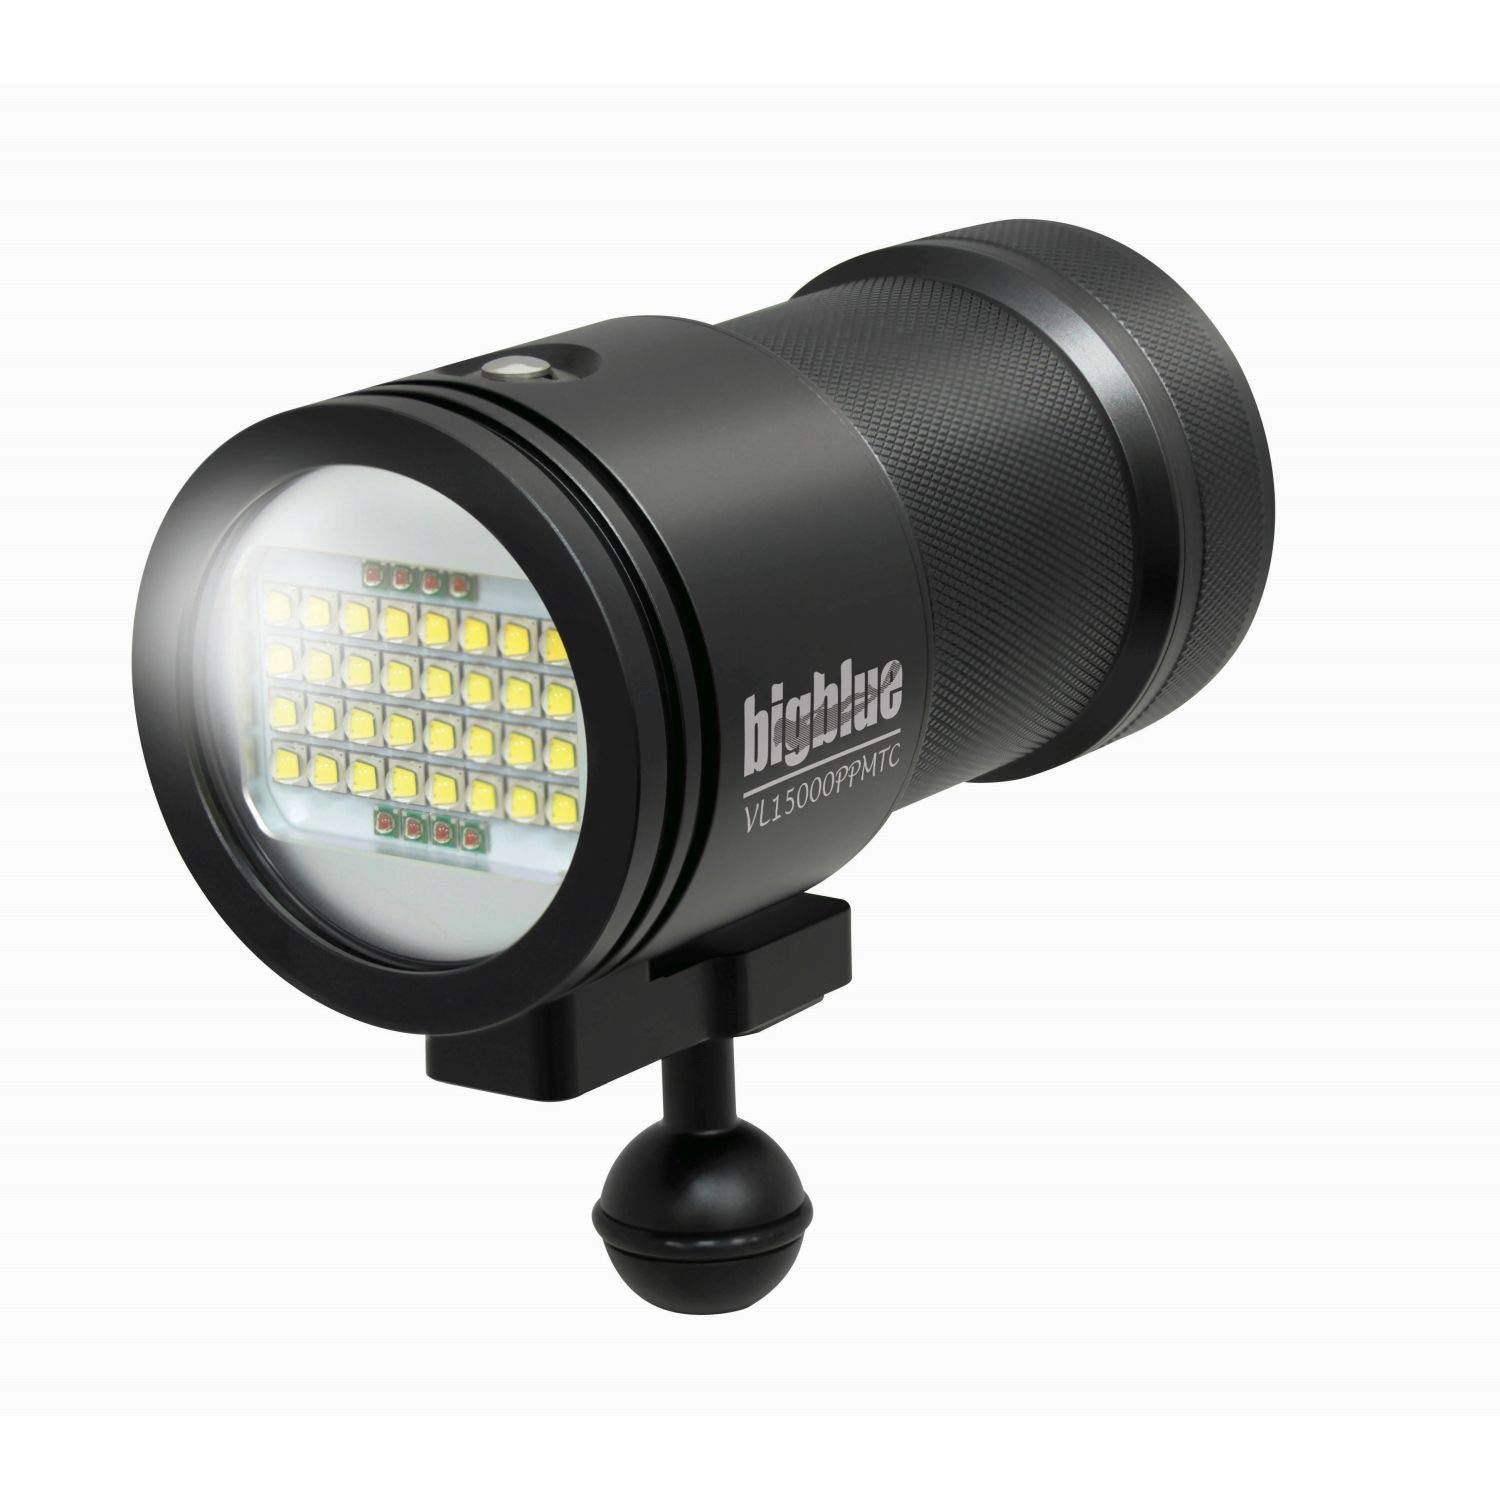 Bigblue VL15000P-TriColor - 15,000 Lumen Professional Video Light with 3 Color Modes by Bigblue (Image #1)